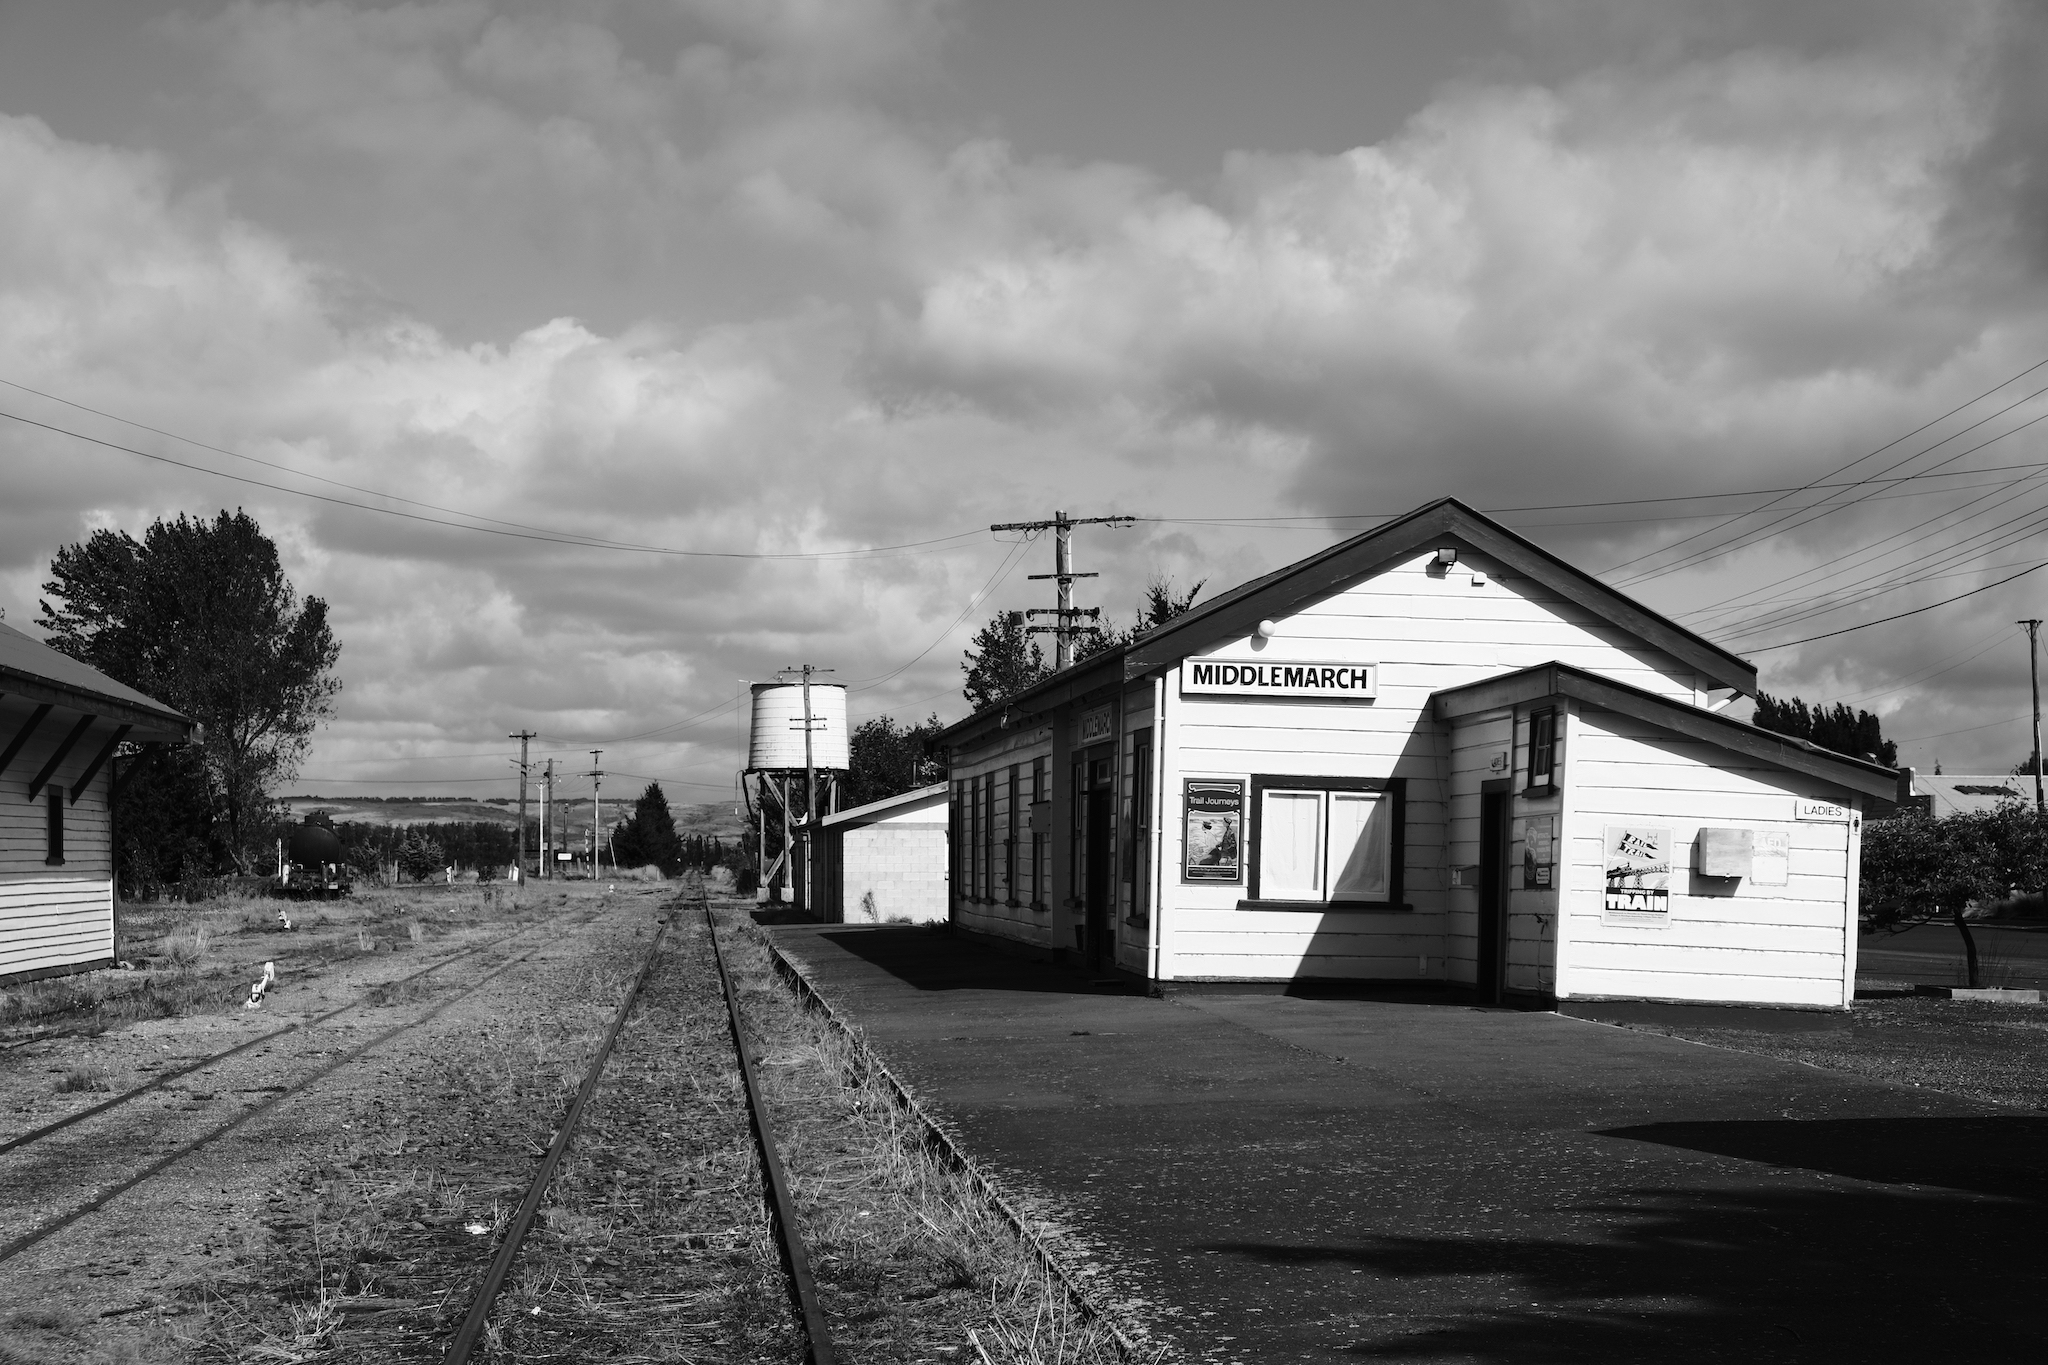 Middlemarch Station